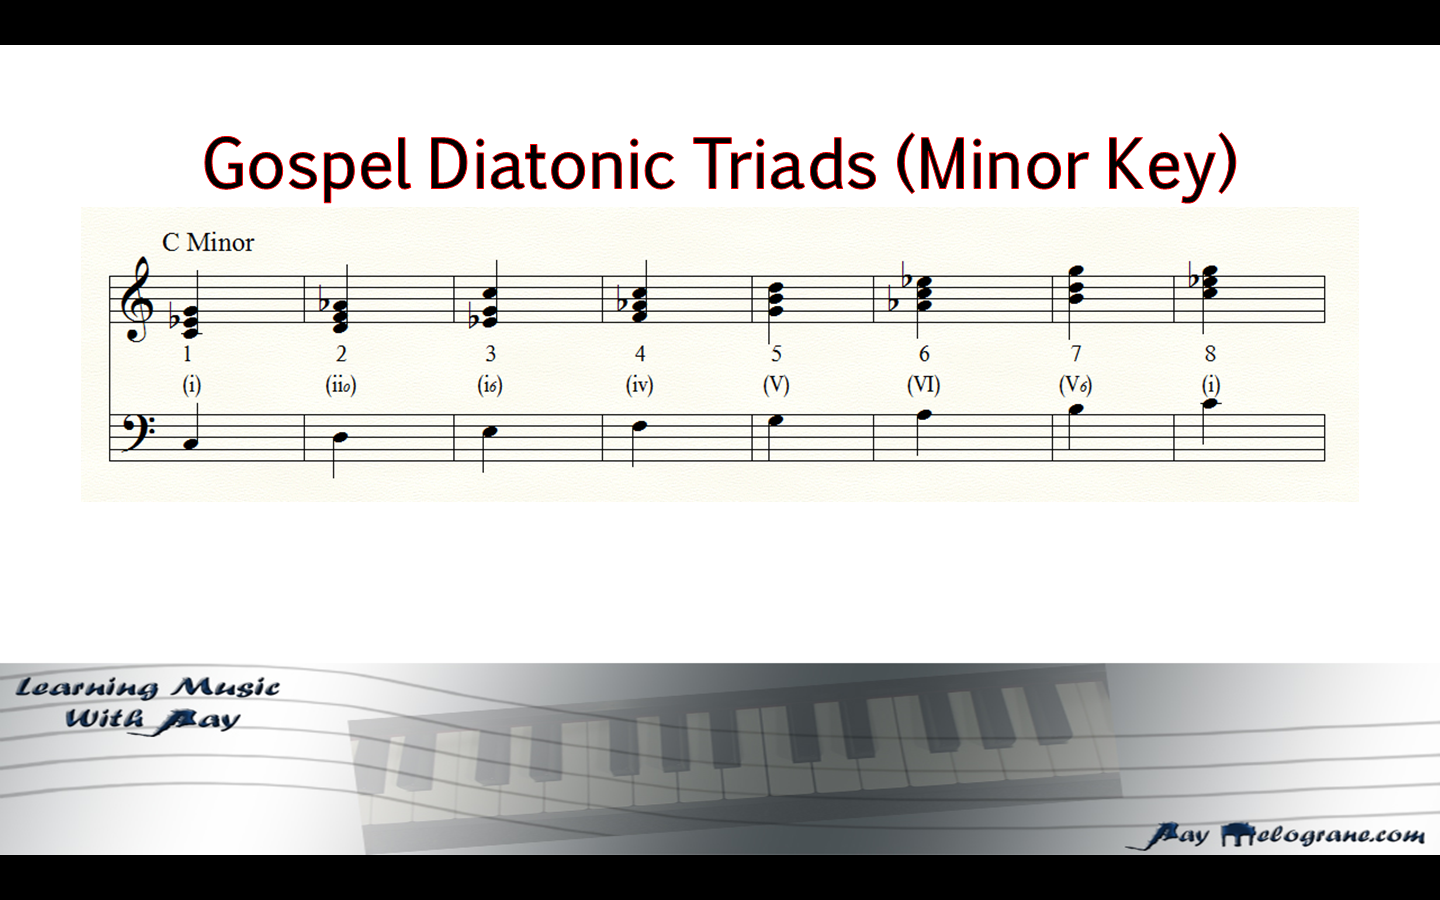 Learning music with ray blog gospel piano part 1 diatonic triads these changes were applied to the gospel version of the diatonic triads displayed in this video but other substitutions are also discussed in the lesson hexwebz Gallery